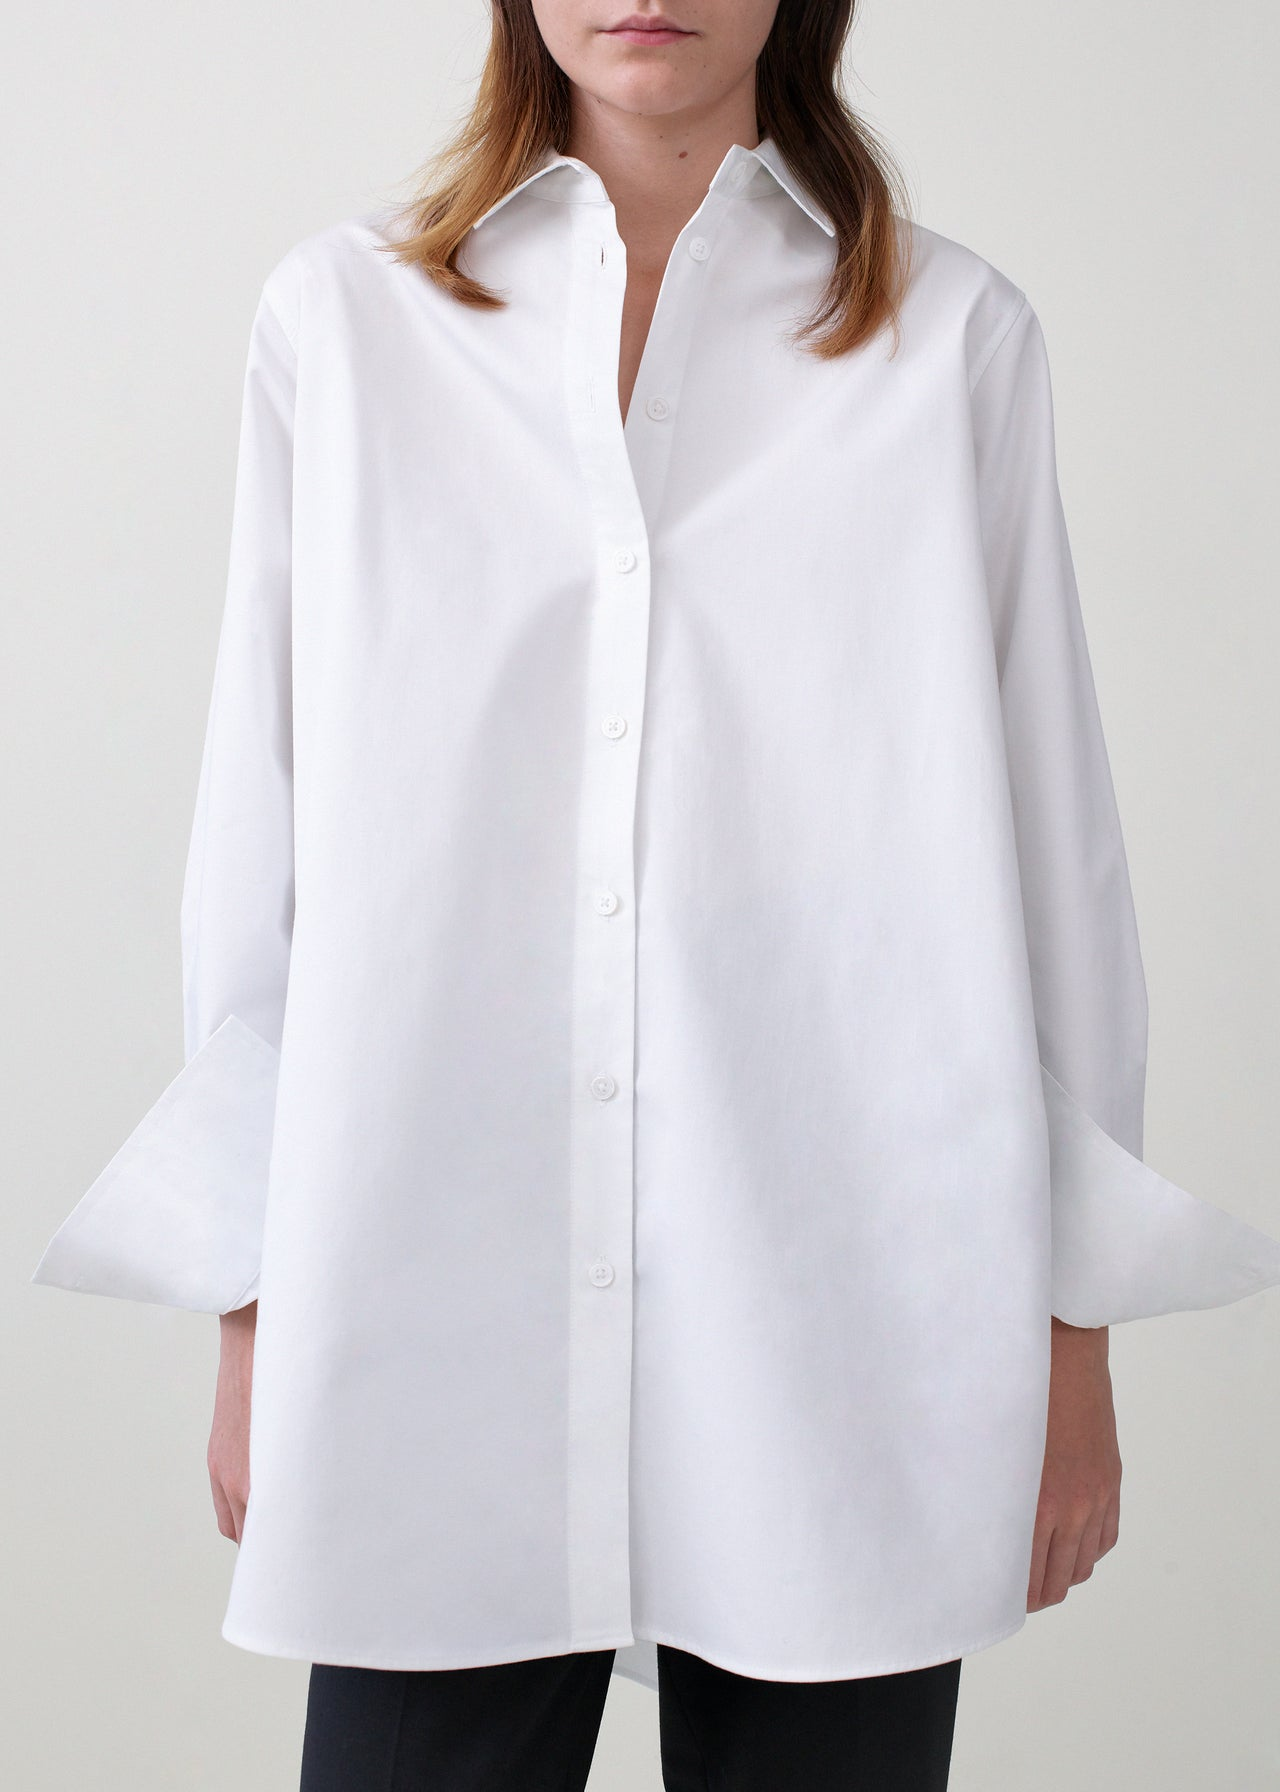 A-Line Button Down Shirt - White